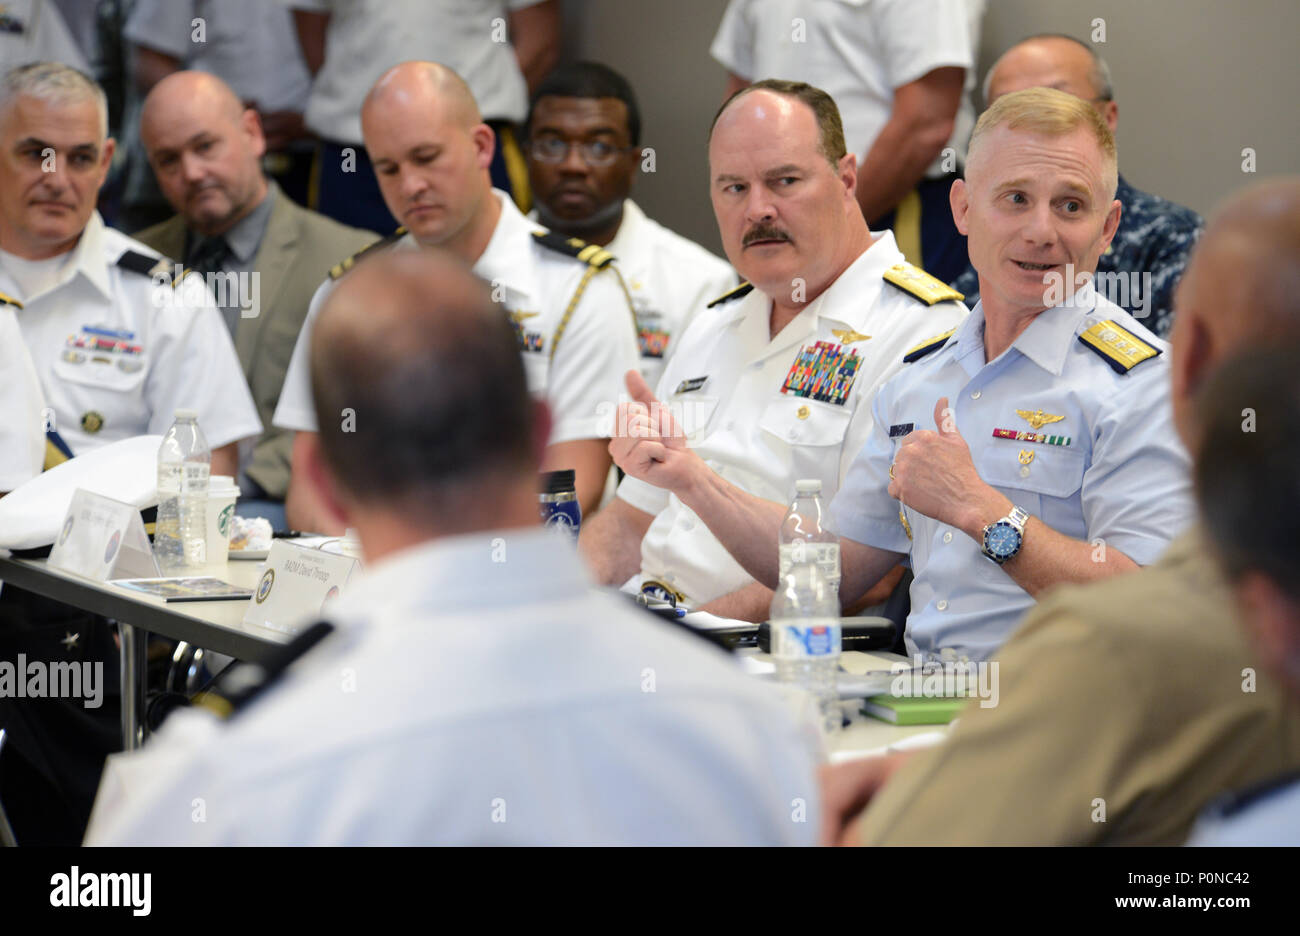 U.S. Coast Guard Rear Admiral David G. Throop (right), 13th Coast Guard District commander, offers final comments and remarks during the Portland Rose Festival Defense Support of Civil Authorities (DSCA) seminar held at Camp Withycombe, in Clackamas, Oregon, June 7, 2018. The one-day event brought together senior leadership from the Oregon and Washington National Guard, U.S. Navy, Coast Guard, and other civil emergency managers as they review the Cascadia Subduction Zone Planning. (National Guard photo by John Hughel, Oregon Military Department Public Affairs) - Stock Image